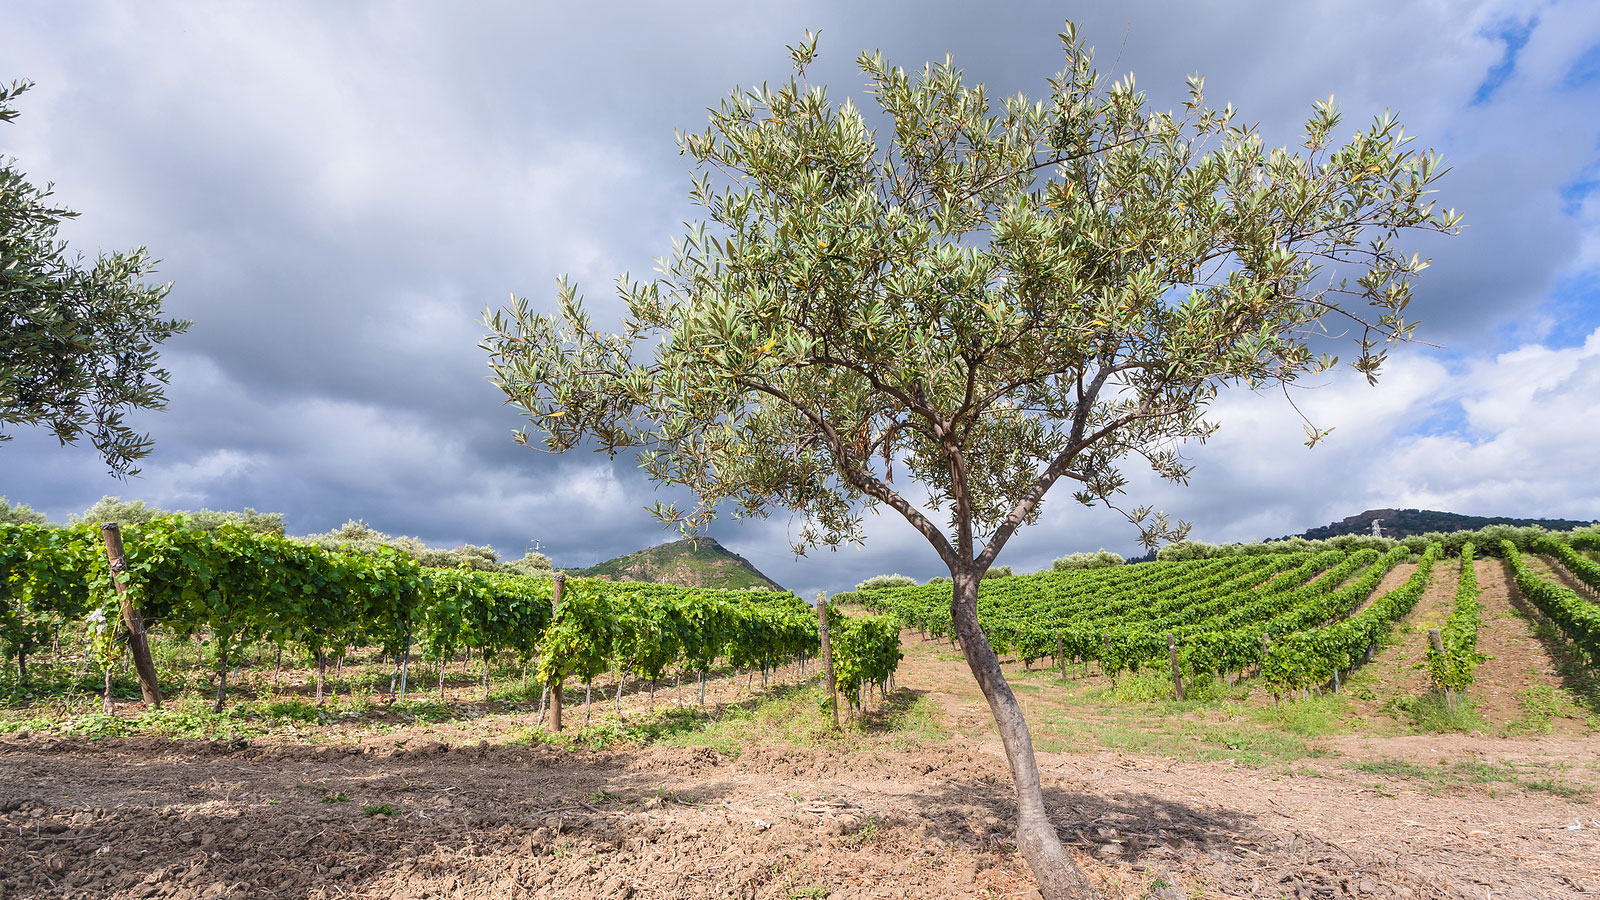 Olive tree and vineyard, Sicily, italy.